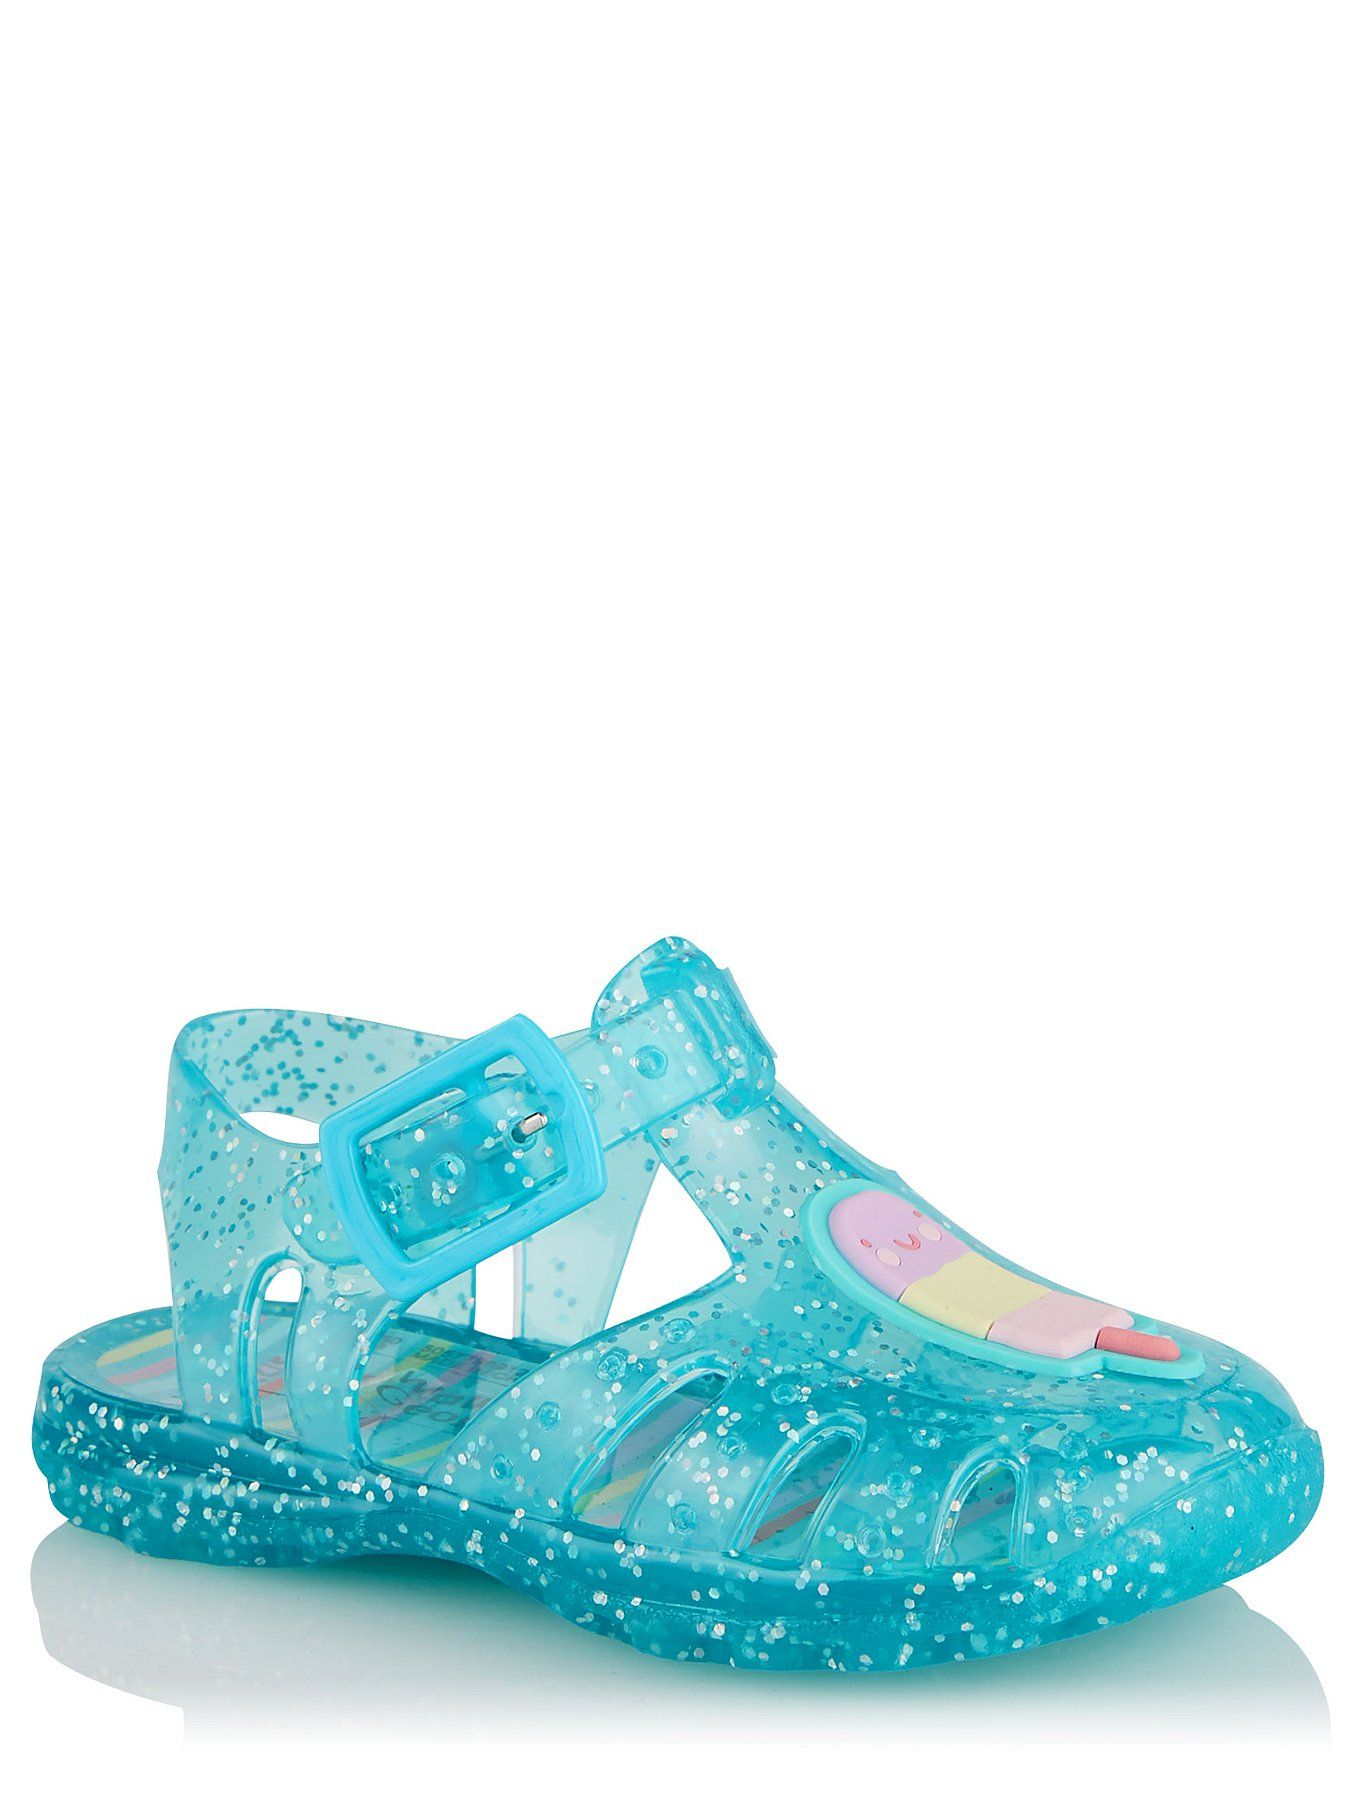 Girls shoes, Kid shoes, Baby girl shoes